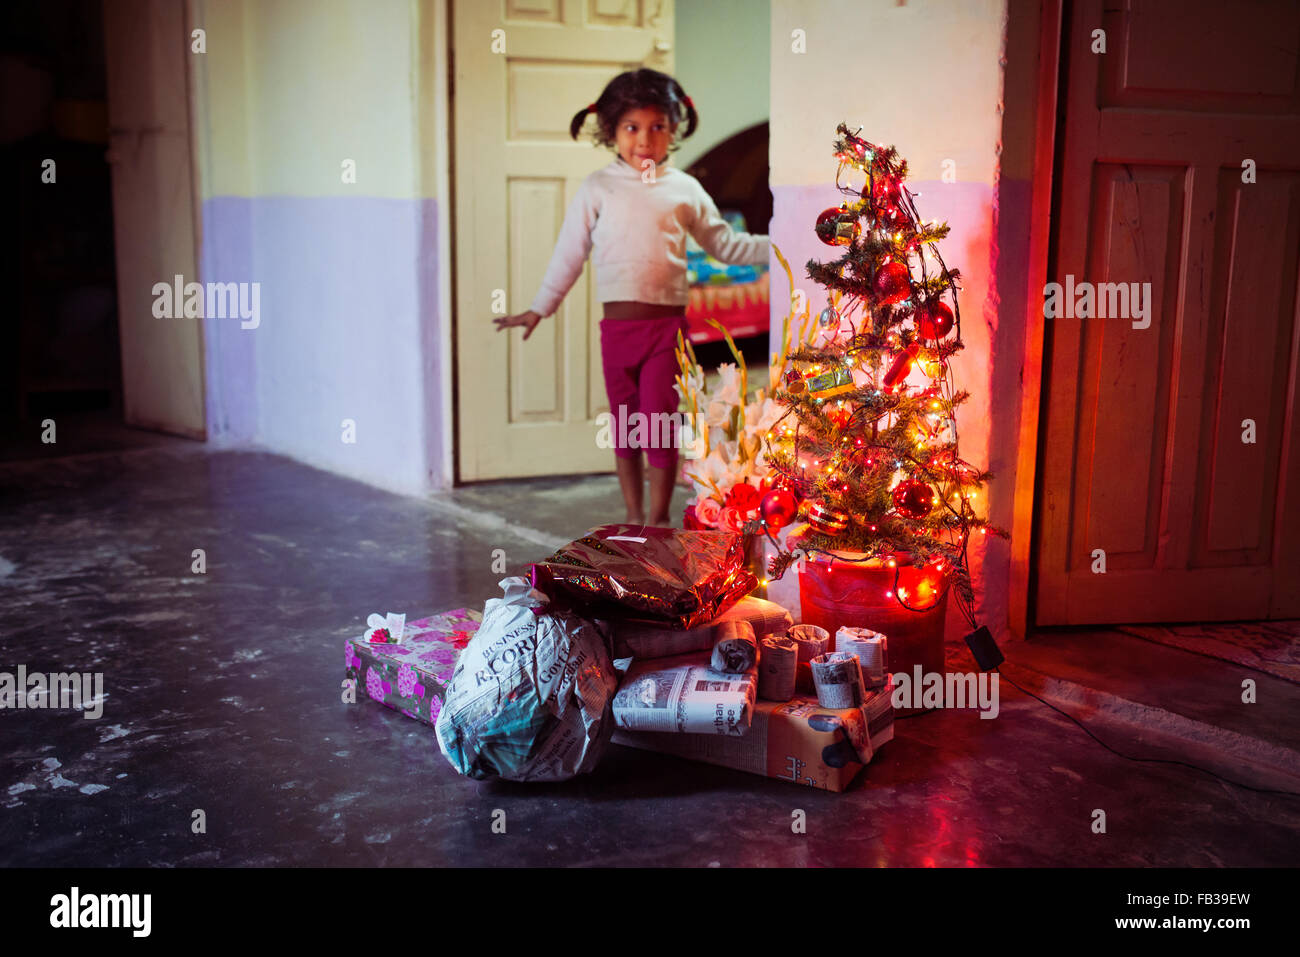 Christmas in Pakistan - Stock Image